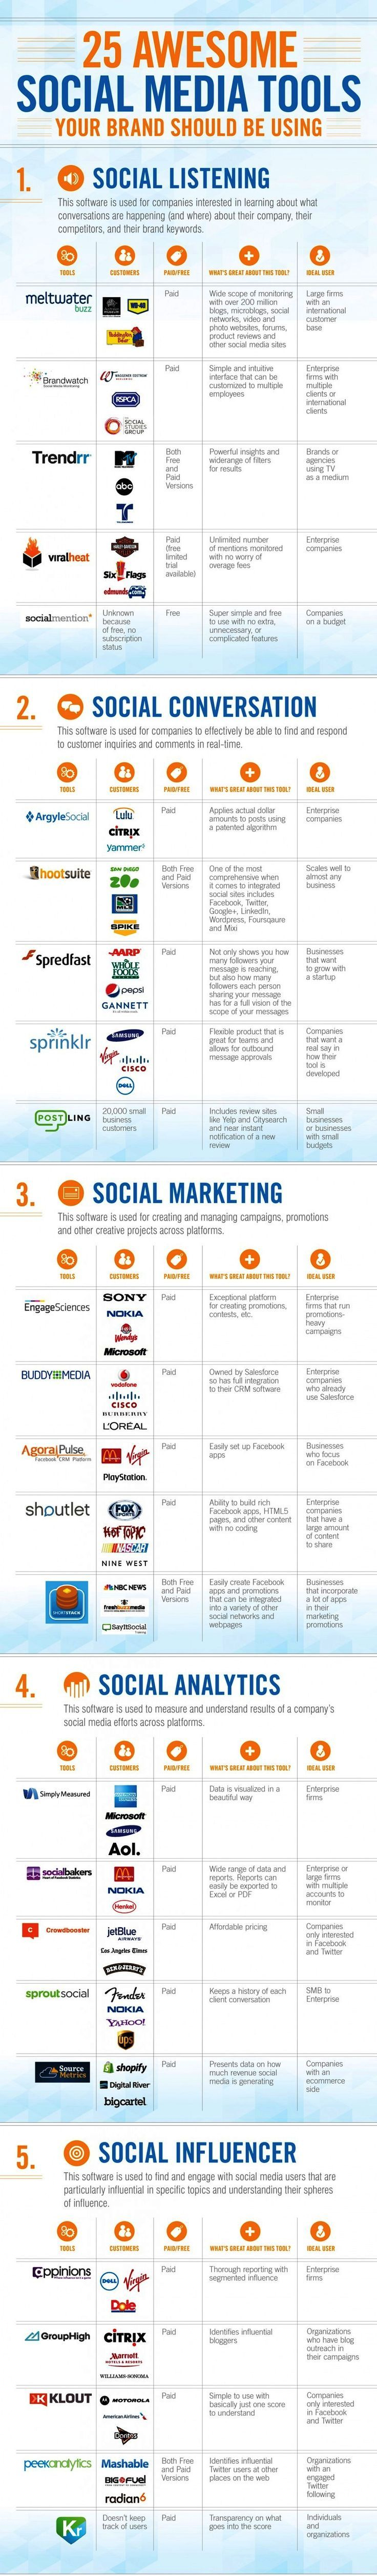 Douglas Karr: Infographic: 25 Awesome Social Media Tools (Marketing Technology Blog)